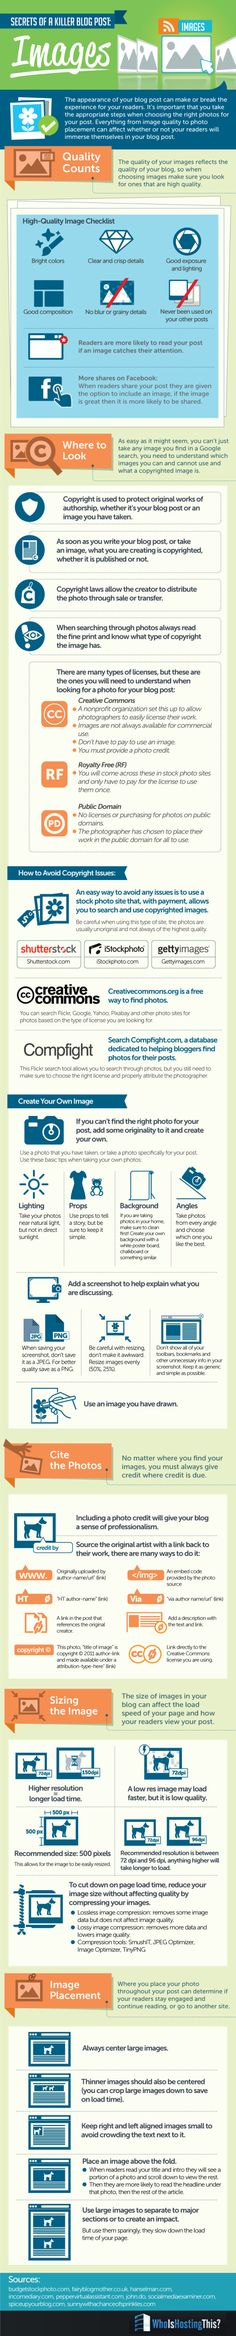 Secrets of a killer blog post: images! Tips on quality, creation, copyright, sources, ...